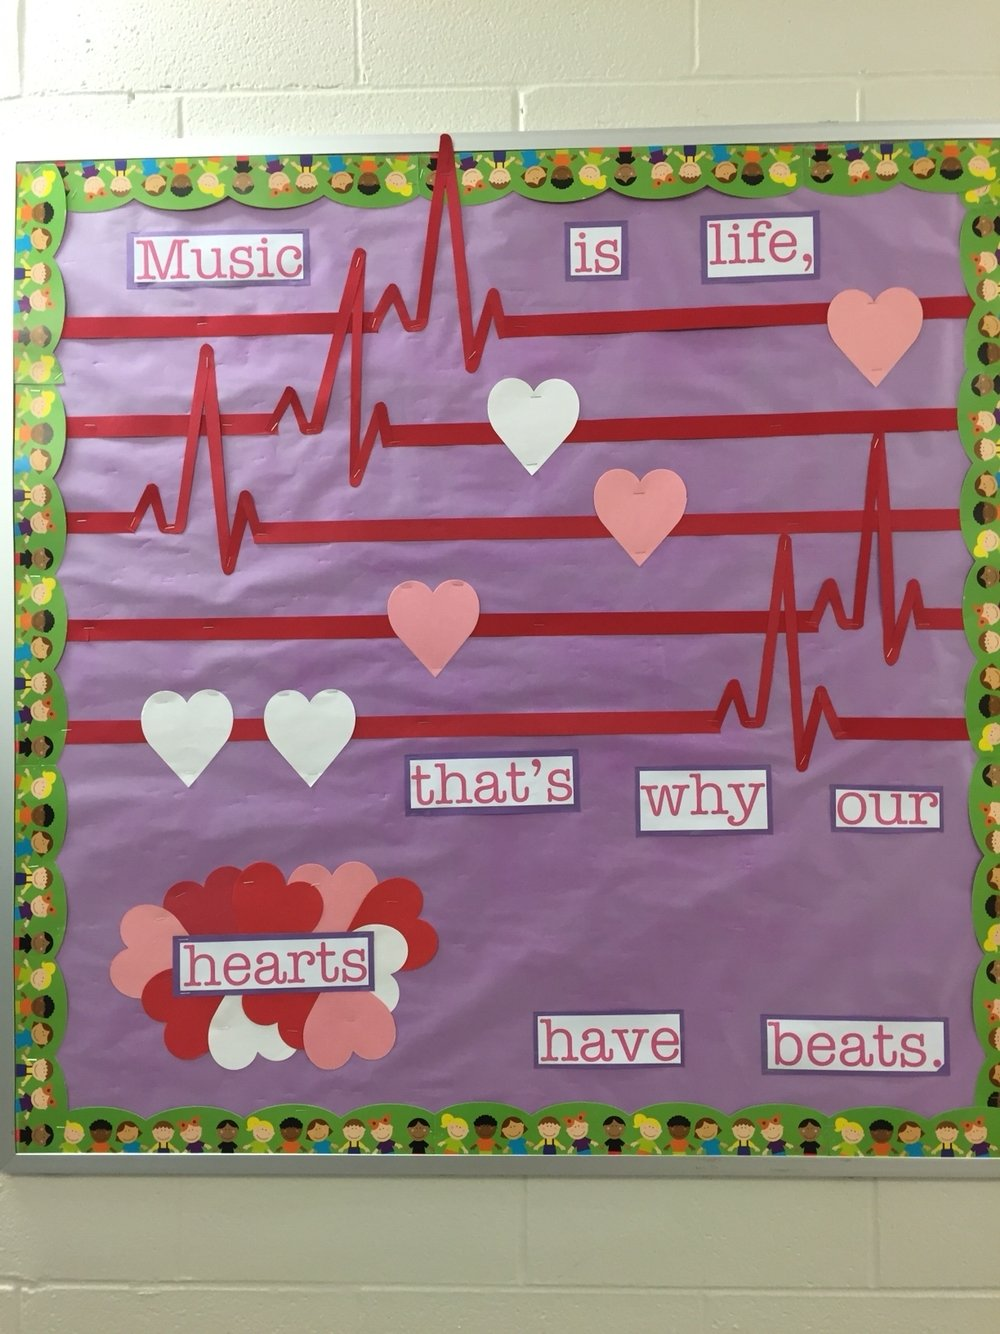 10 Pretty Valentine Bulletin Board Ideas Teachers music is life thats why our hearts have beats valentines music